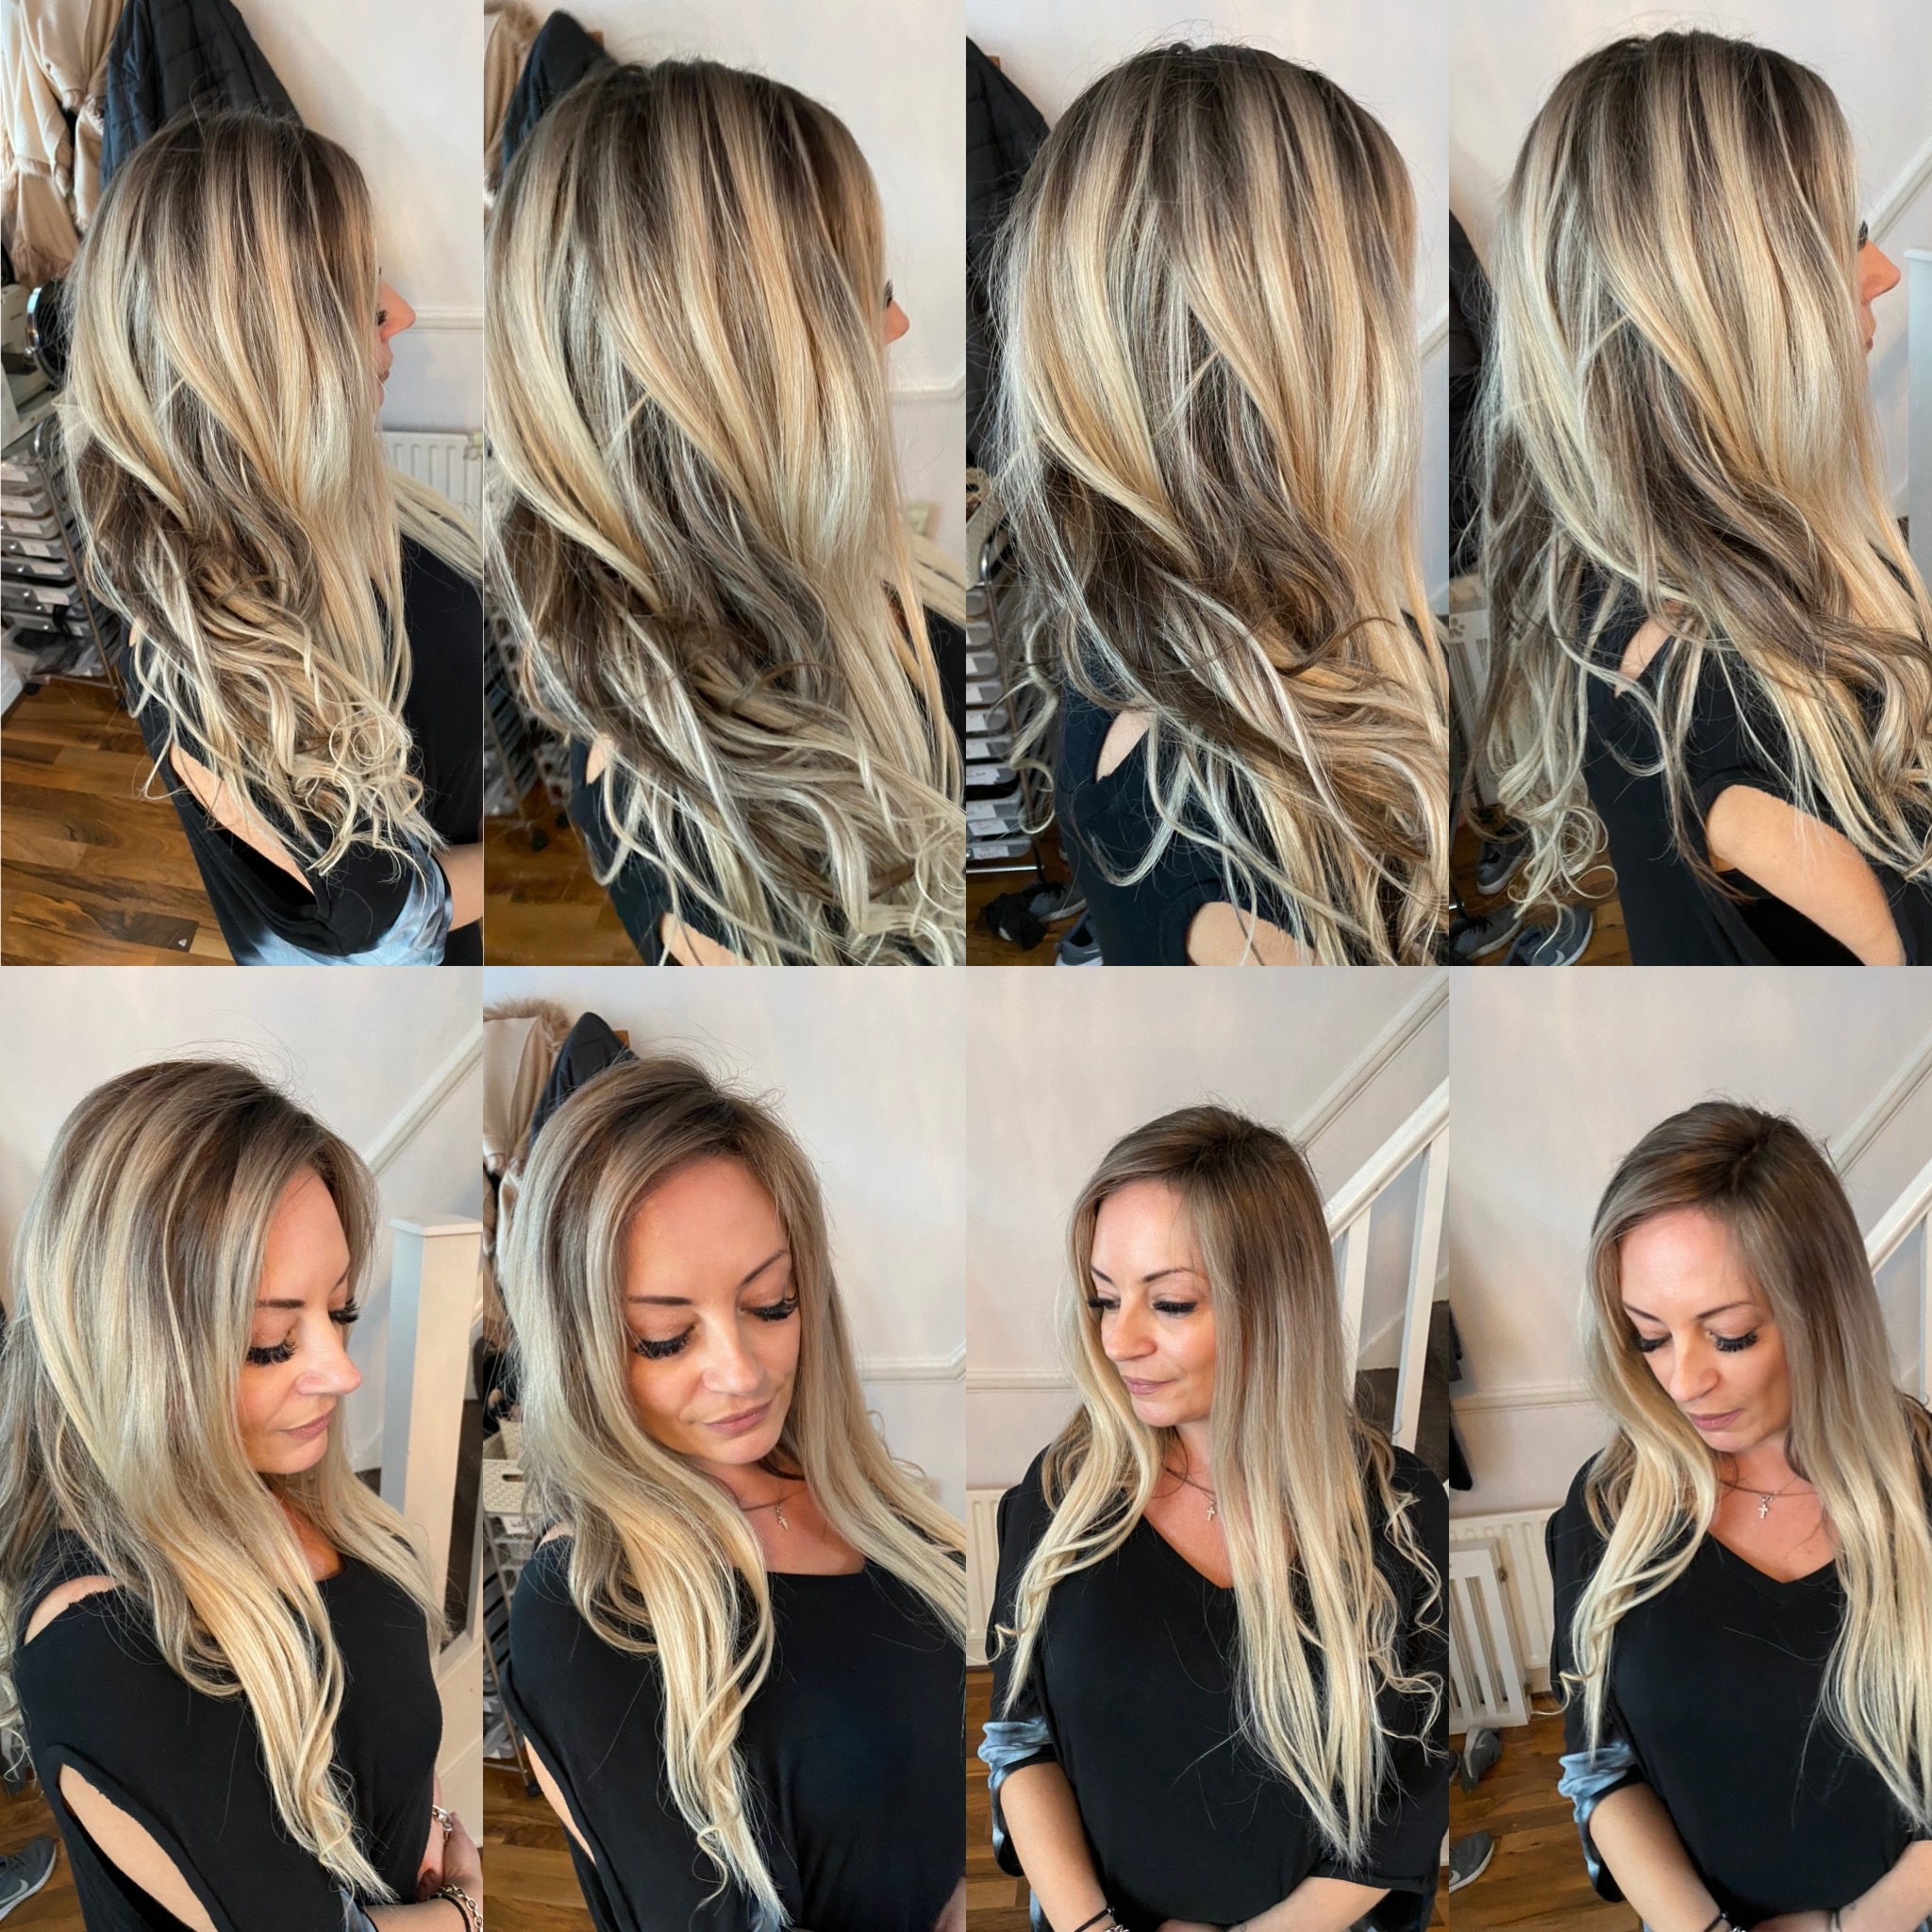 hair topper for women with thin thinning hair loss blonde brown wavy